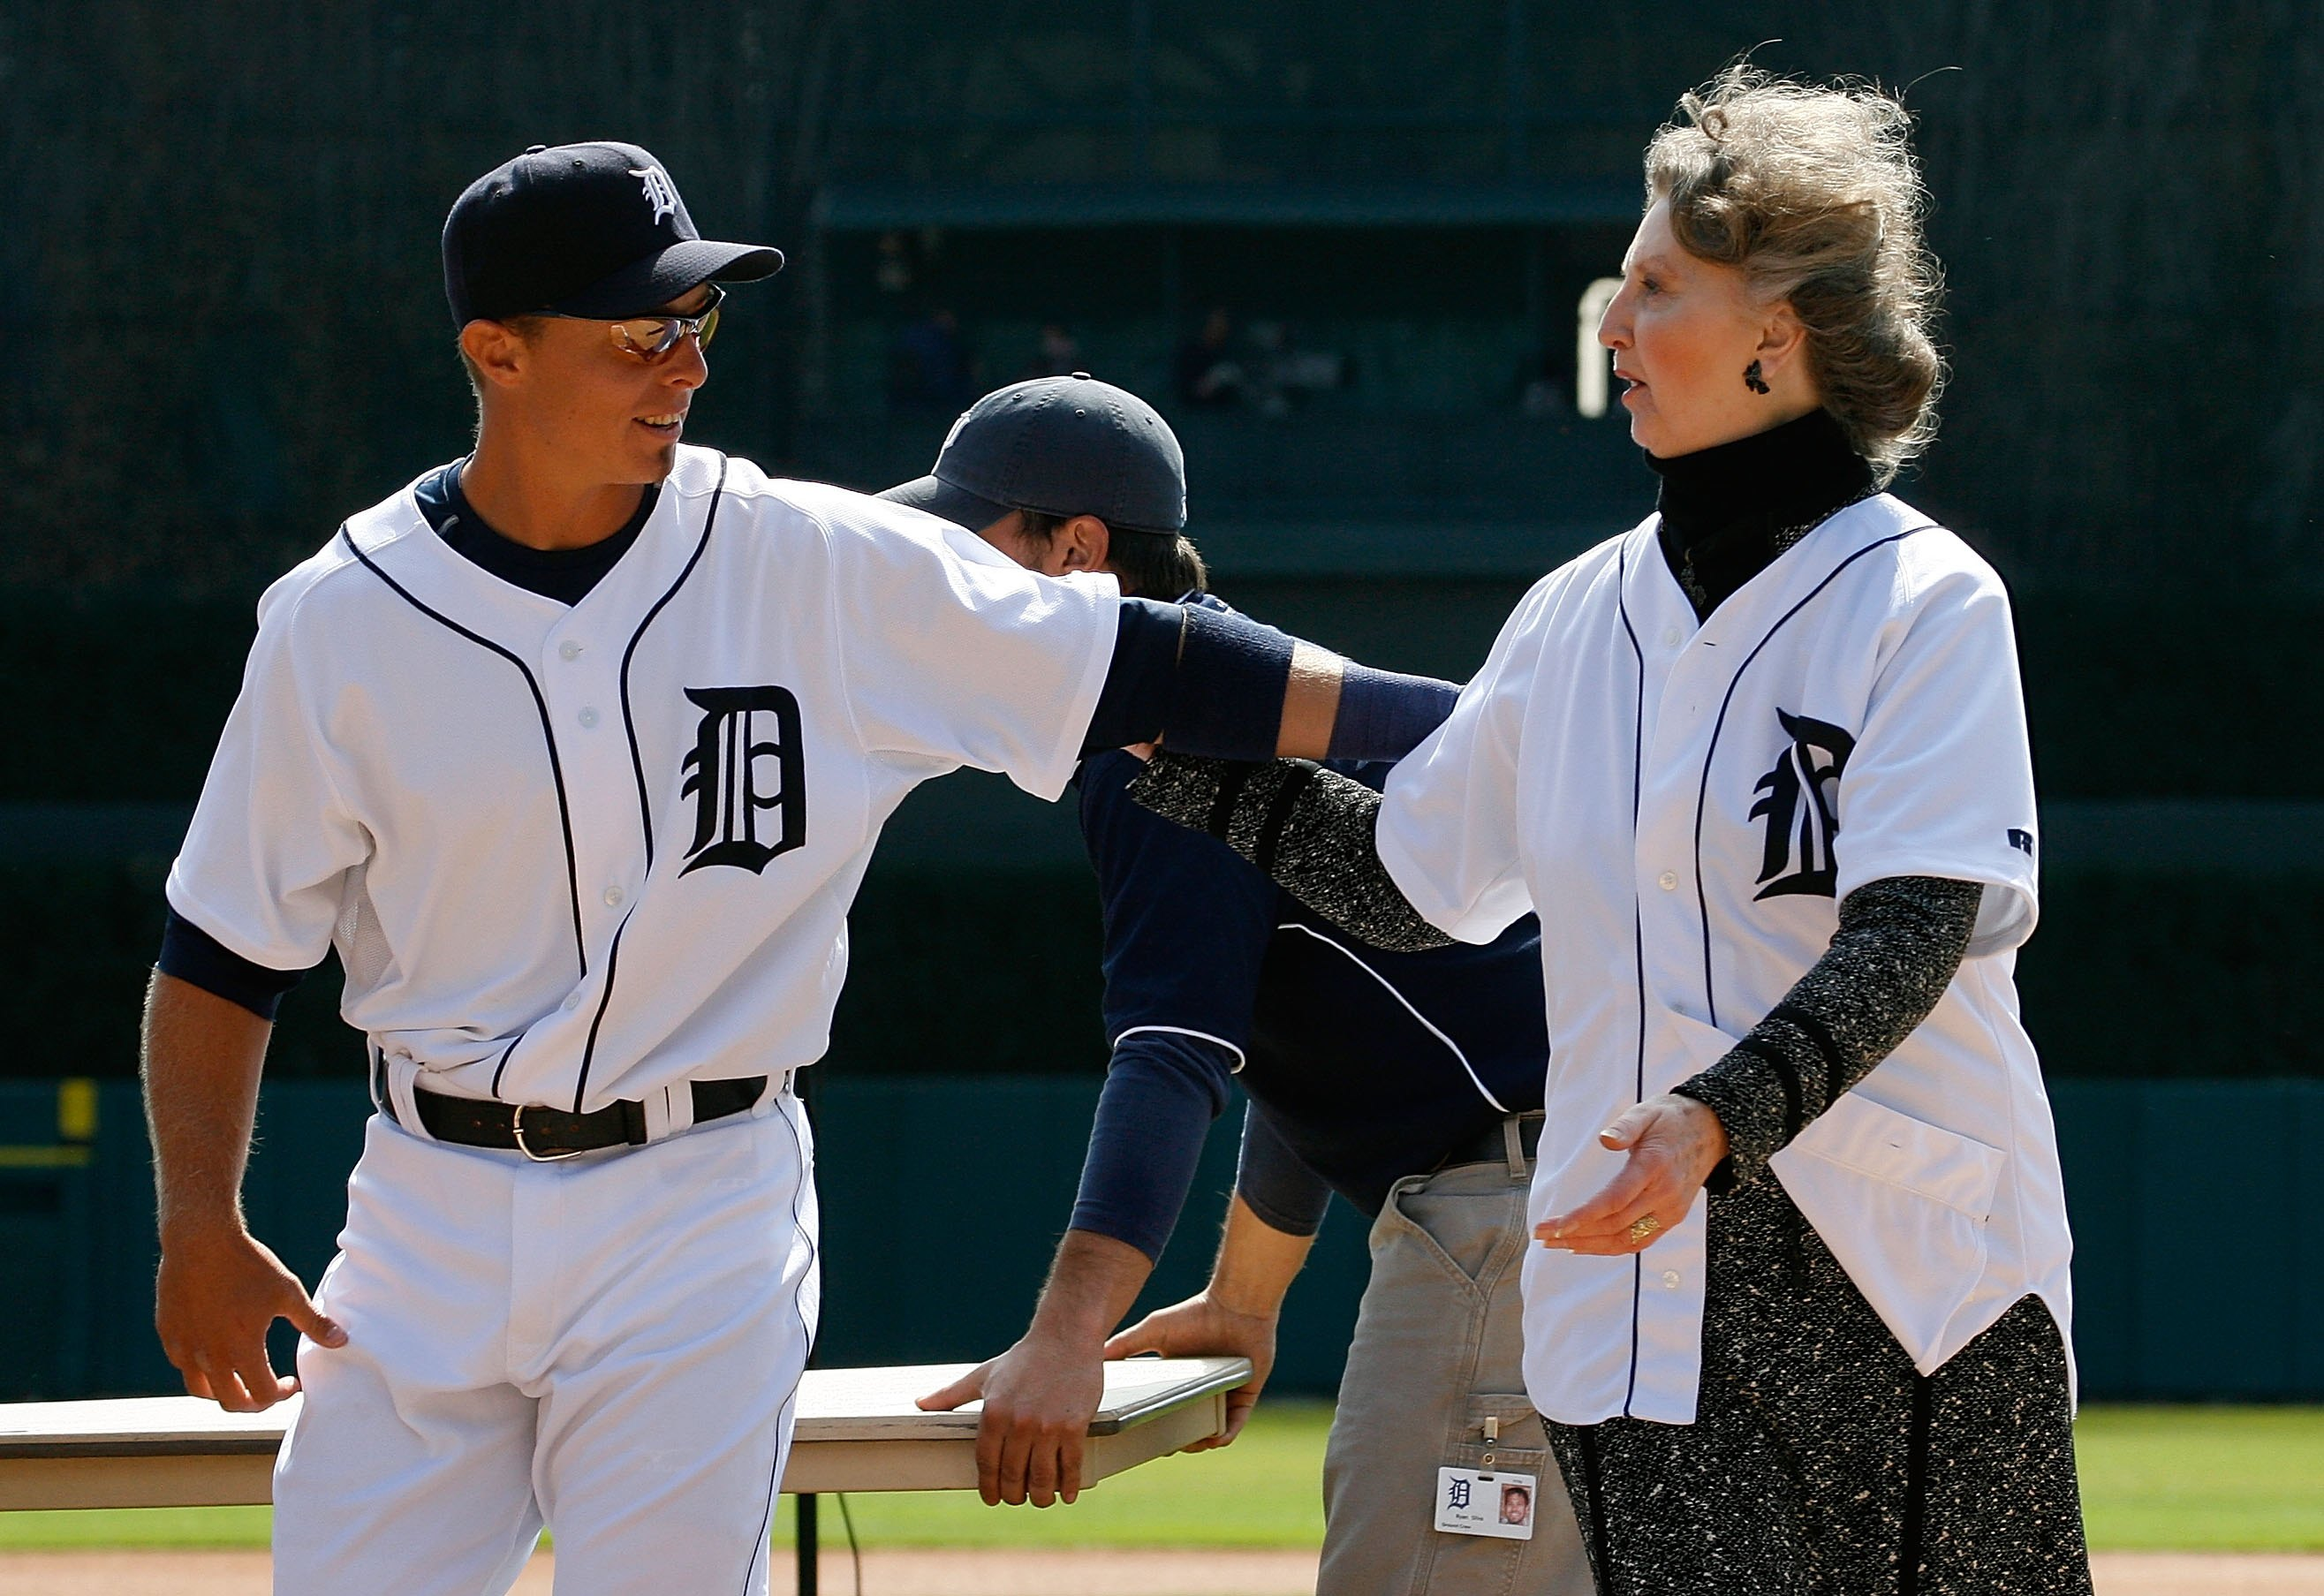 DETROIT - APRIL 02:  Administrative Assistant, Public Affairs Audrey Zielinski (R) and Brandon Inge #15 of the Detroit Tigers walk off the field after they presented a replica of the Tigers 2006 American League Championship Banner for the fans prior to th